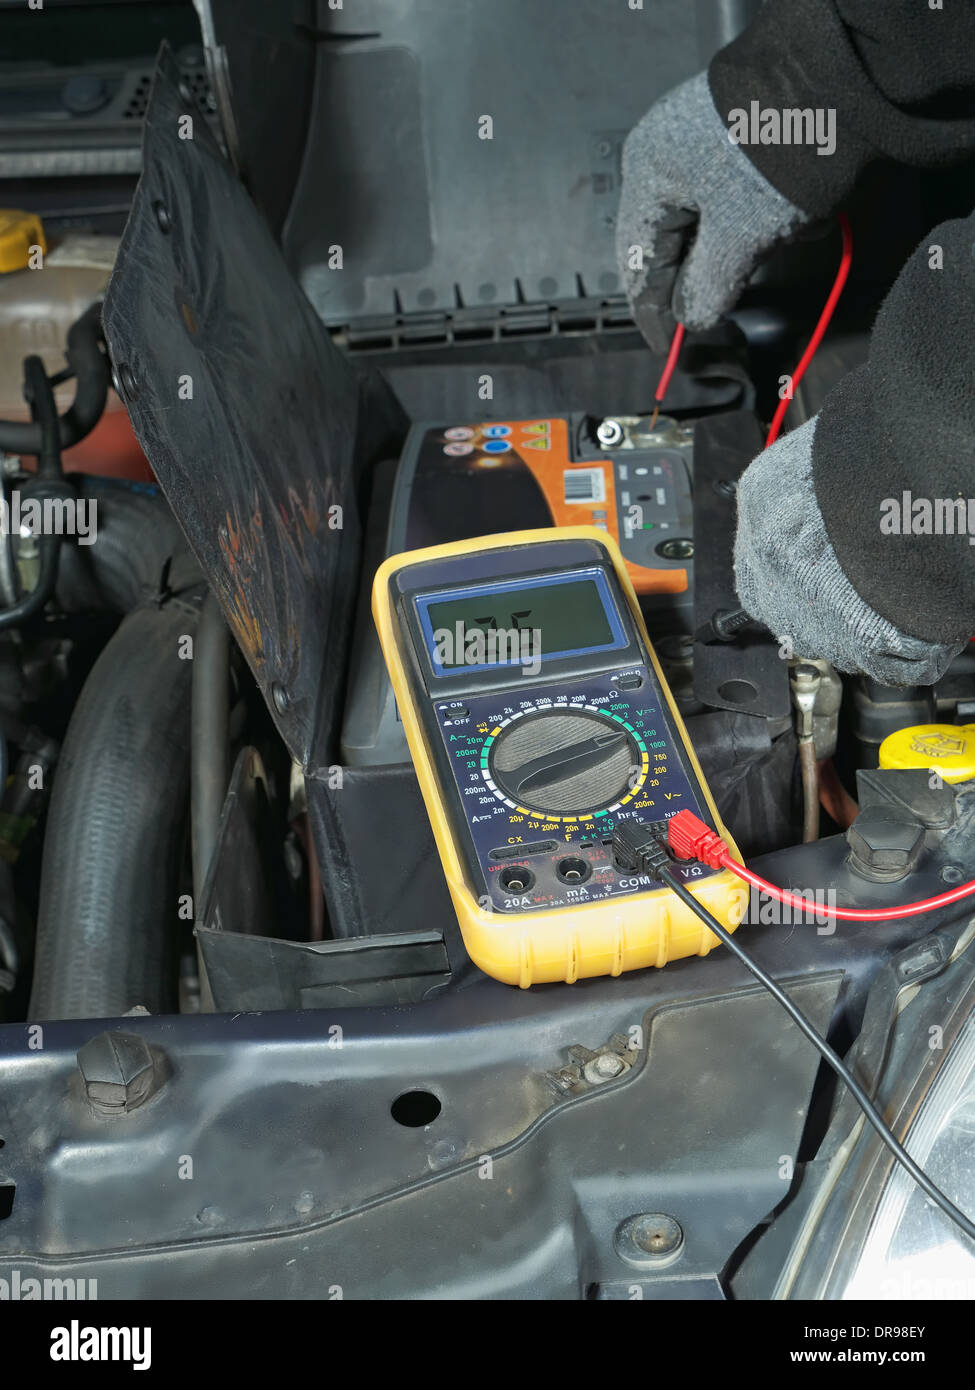 Auto mechanic measuring car battery voltage using multimeter - Stock Image